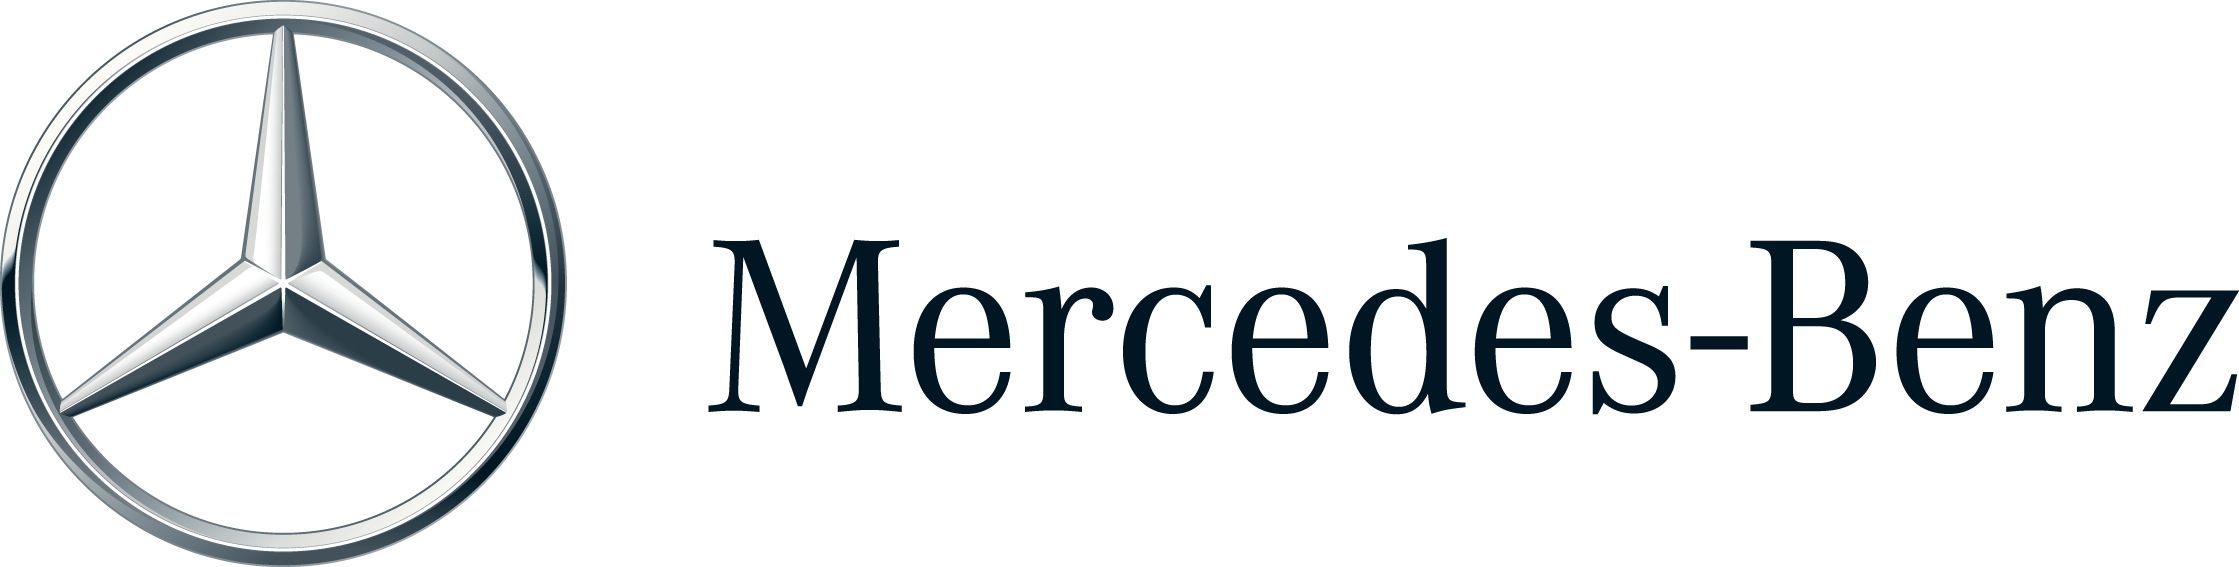 Mercedes_Horizontal-logo-transparent-background-2.png